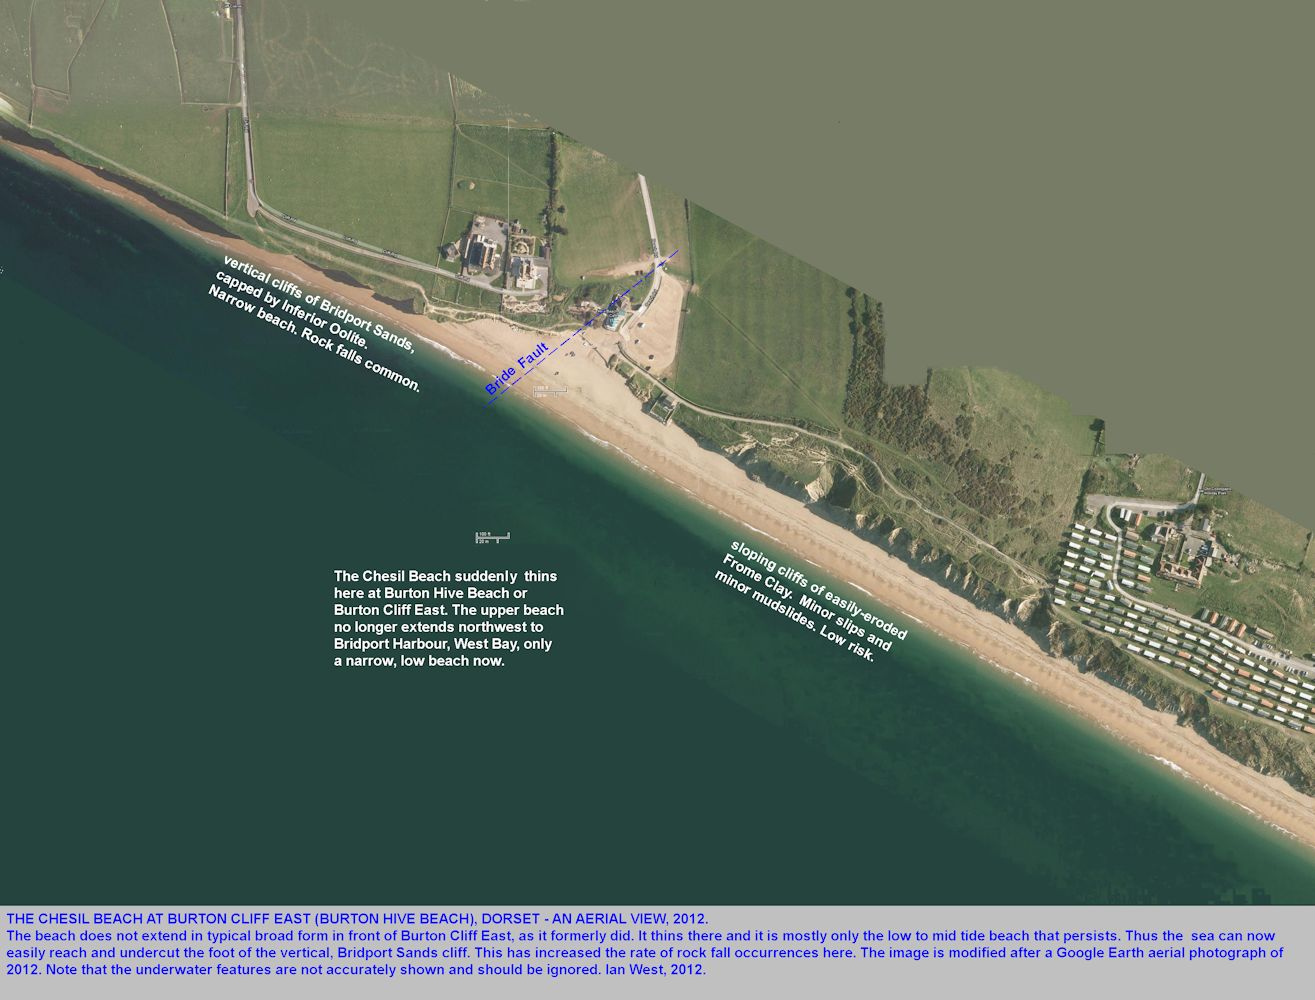 Aerial view of the Chesil Beach thinning at Burton Bradstock East or Hive Beach, Dorset, 2012